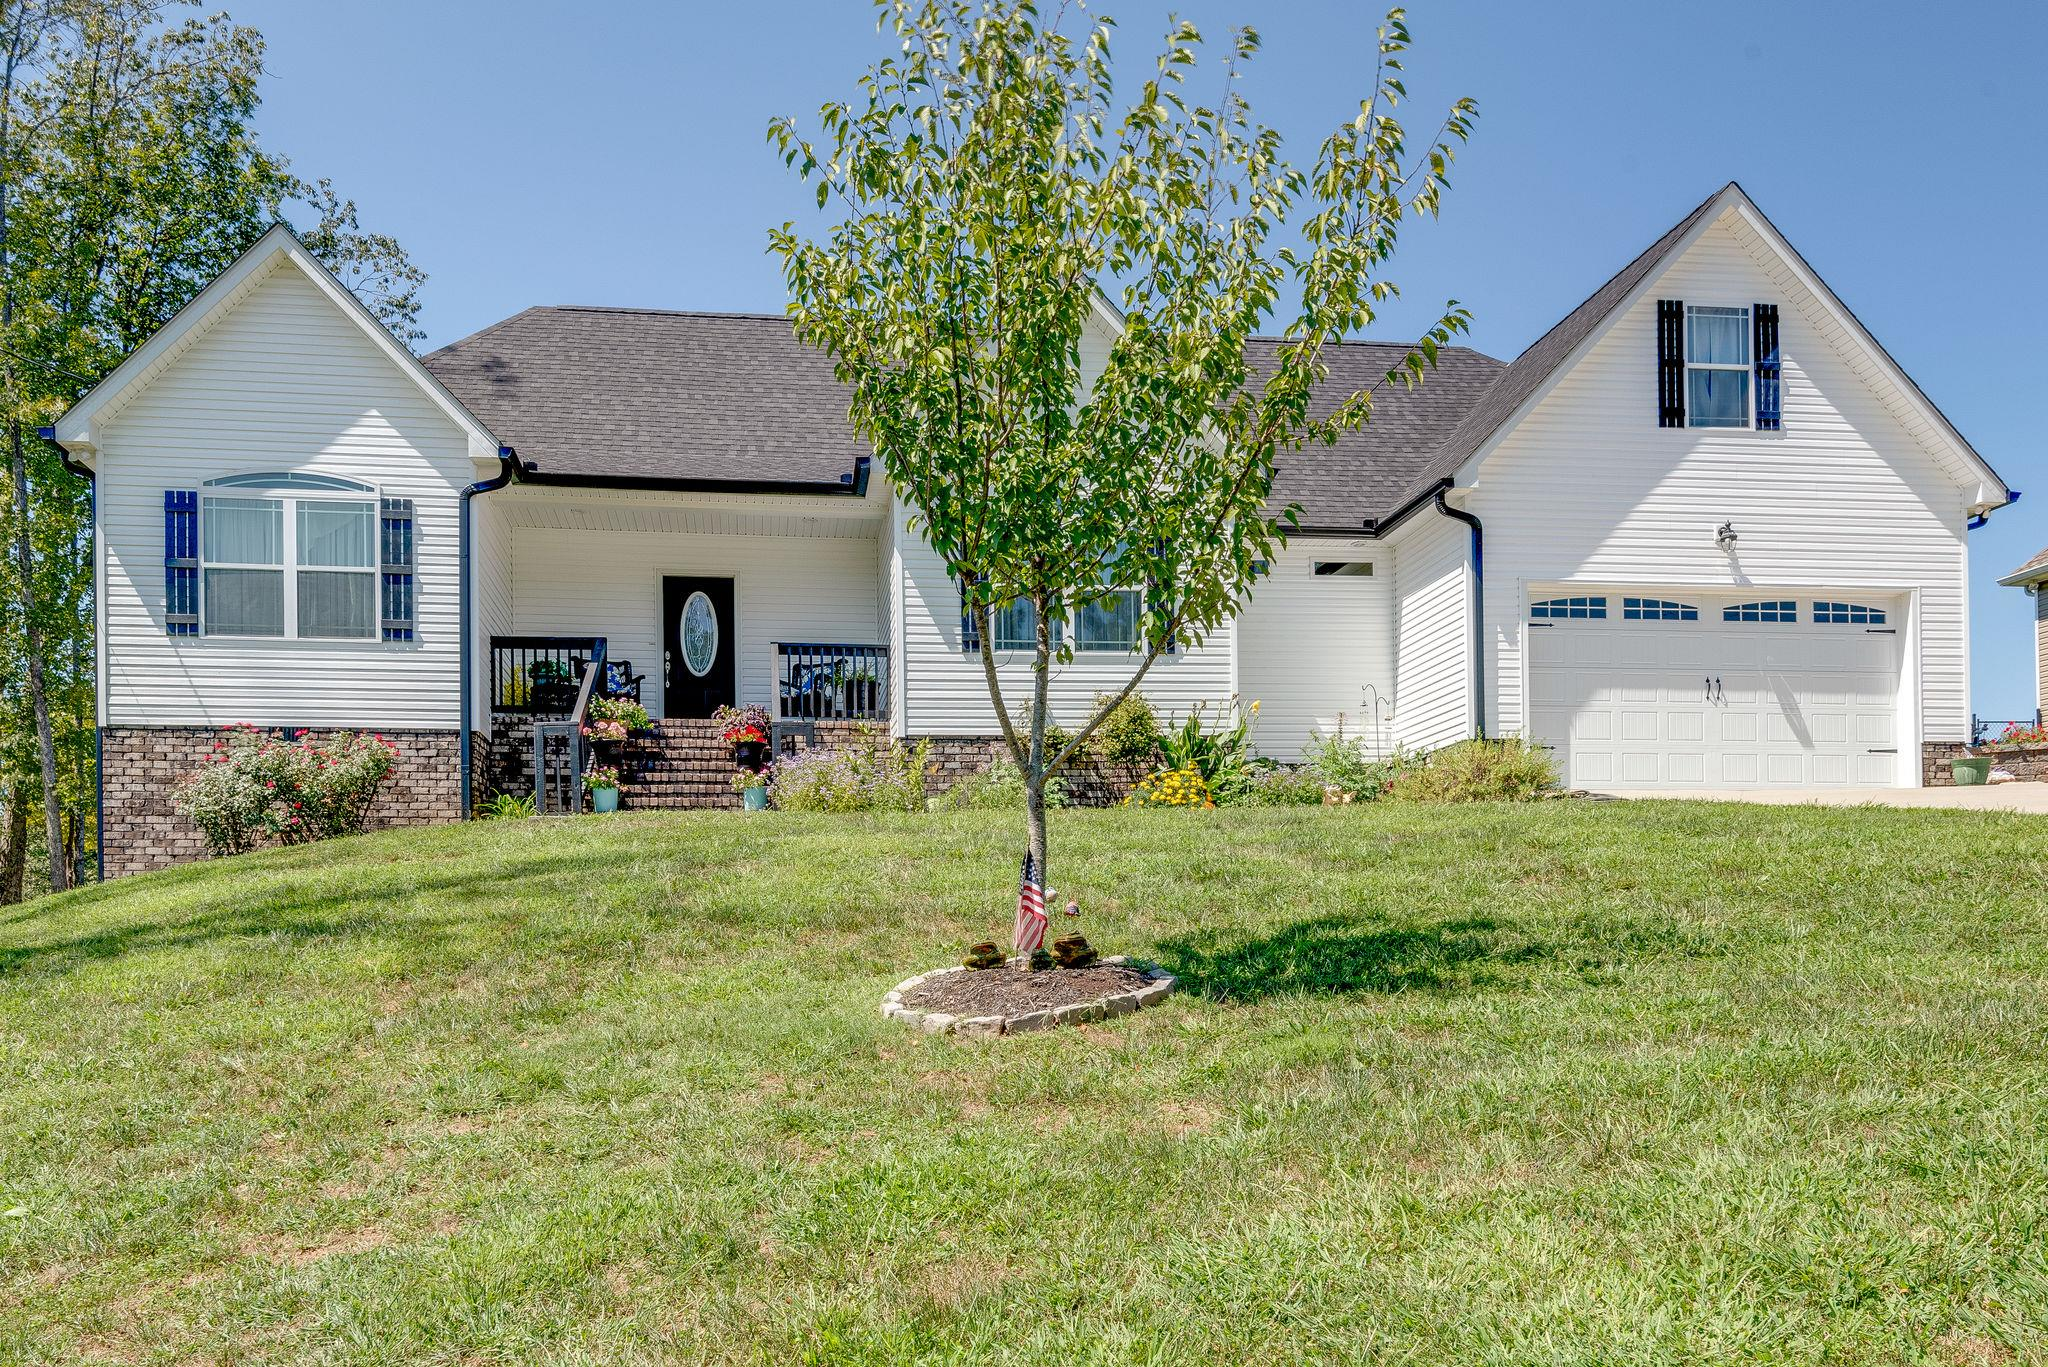 706 Ruby Way, White Bluff, TN 37187 - White Bluff, TN real estate listing